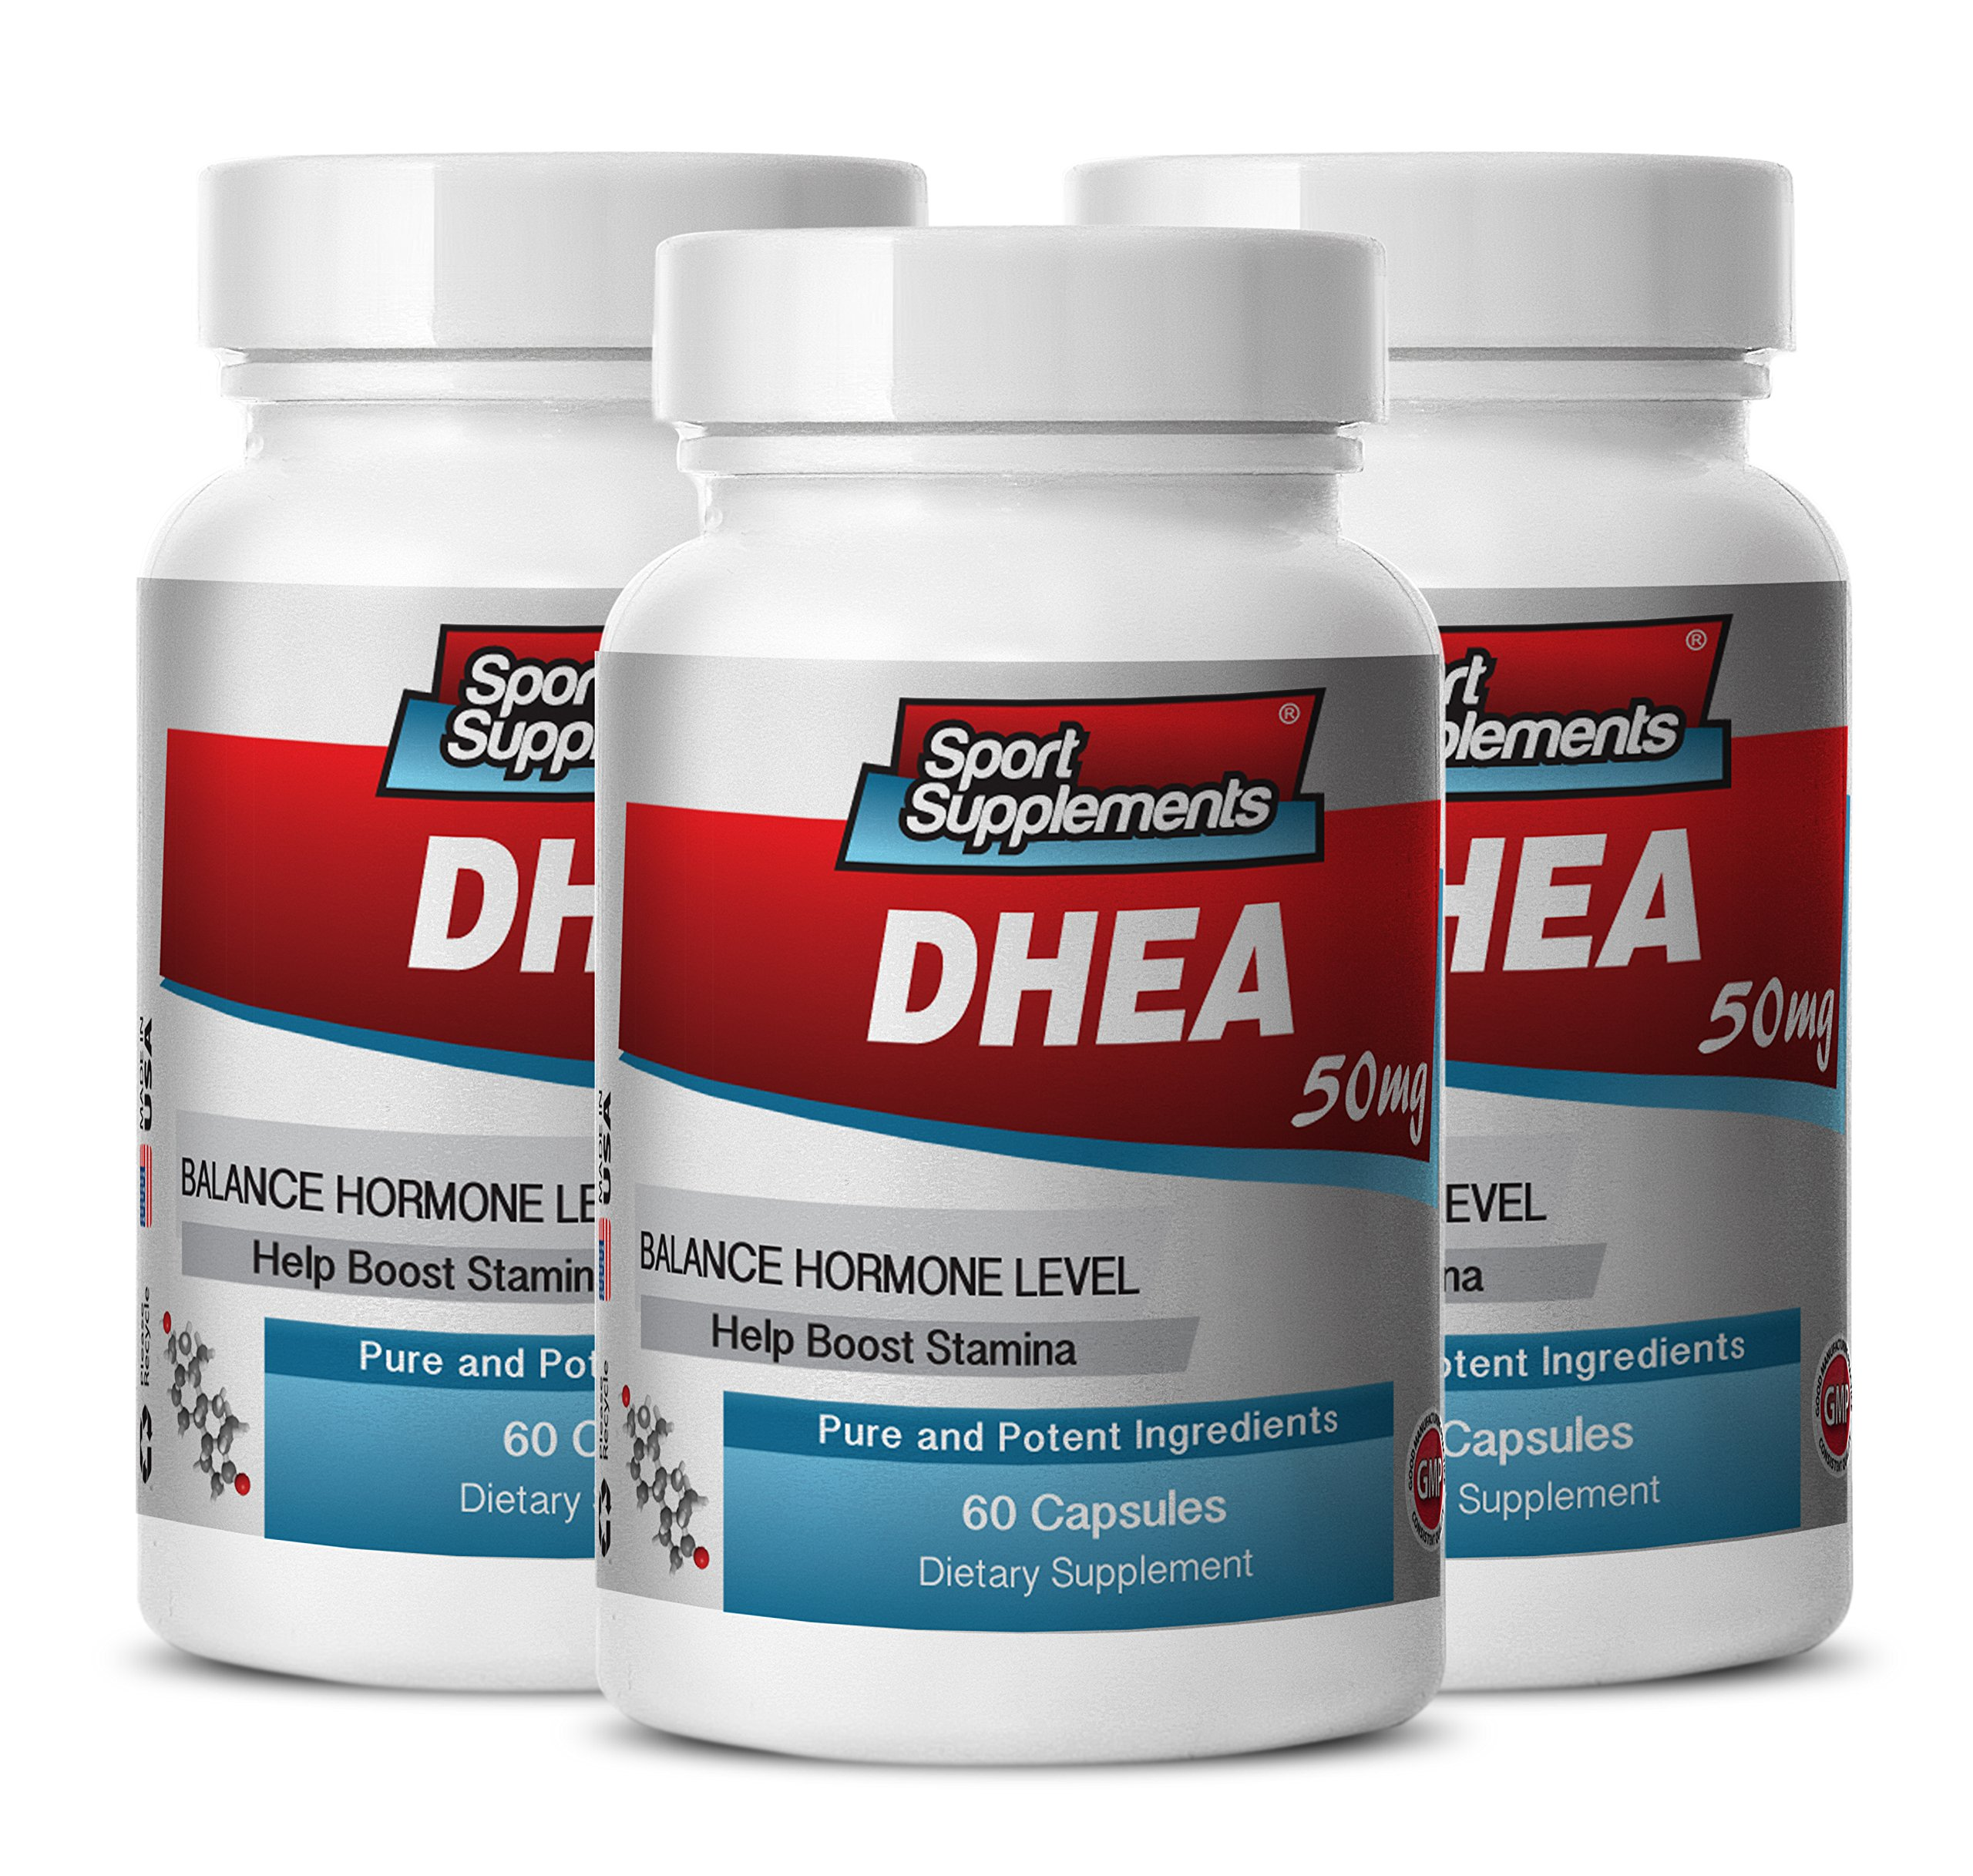 dhea l-arginine - DHEA 50mg - DHEA Natural Suppement for Boosting Sexual Desire and Performance (3 bottles 180 capsules)